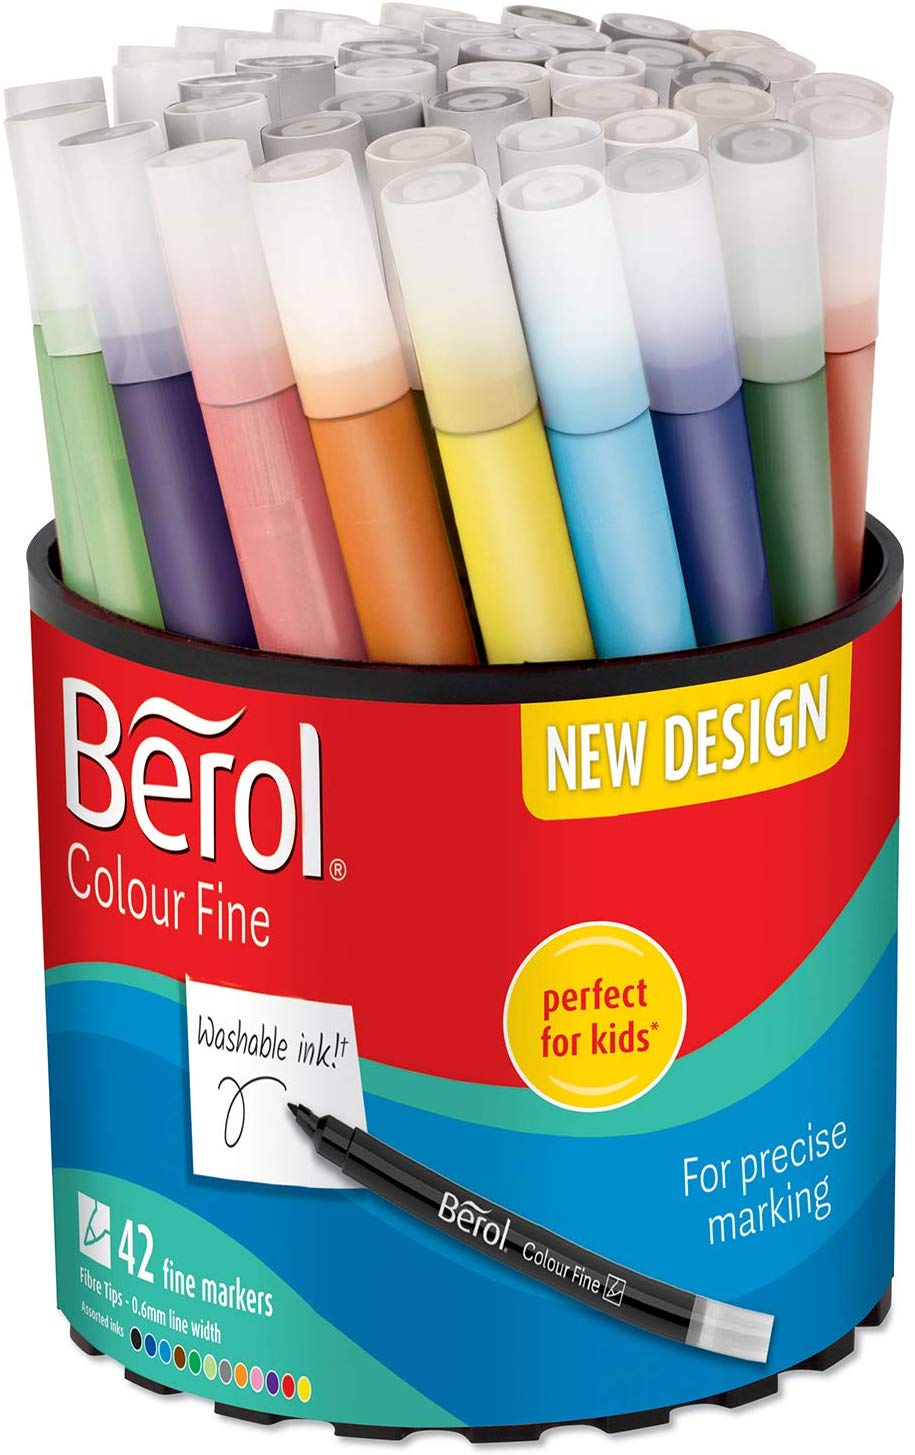 Berol Felt Tip Colouring Pens, Fine Point (0.6mm), Tub of 42 Now £8.99 on Amazon